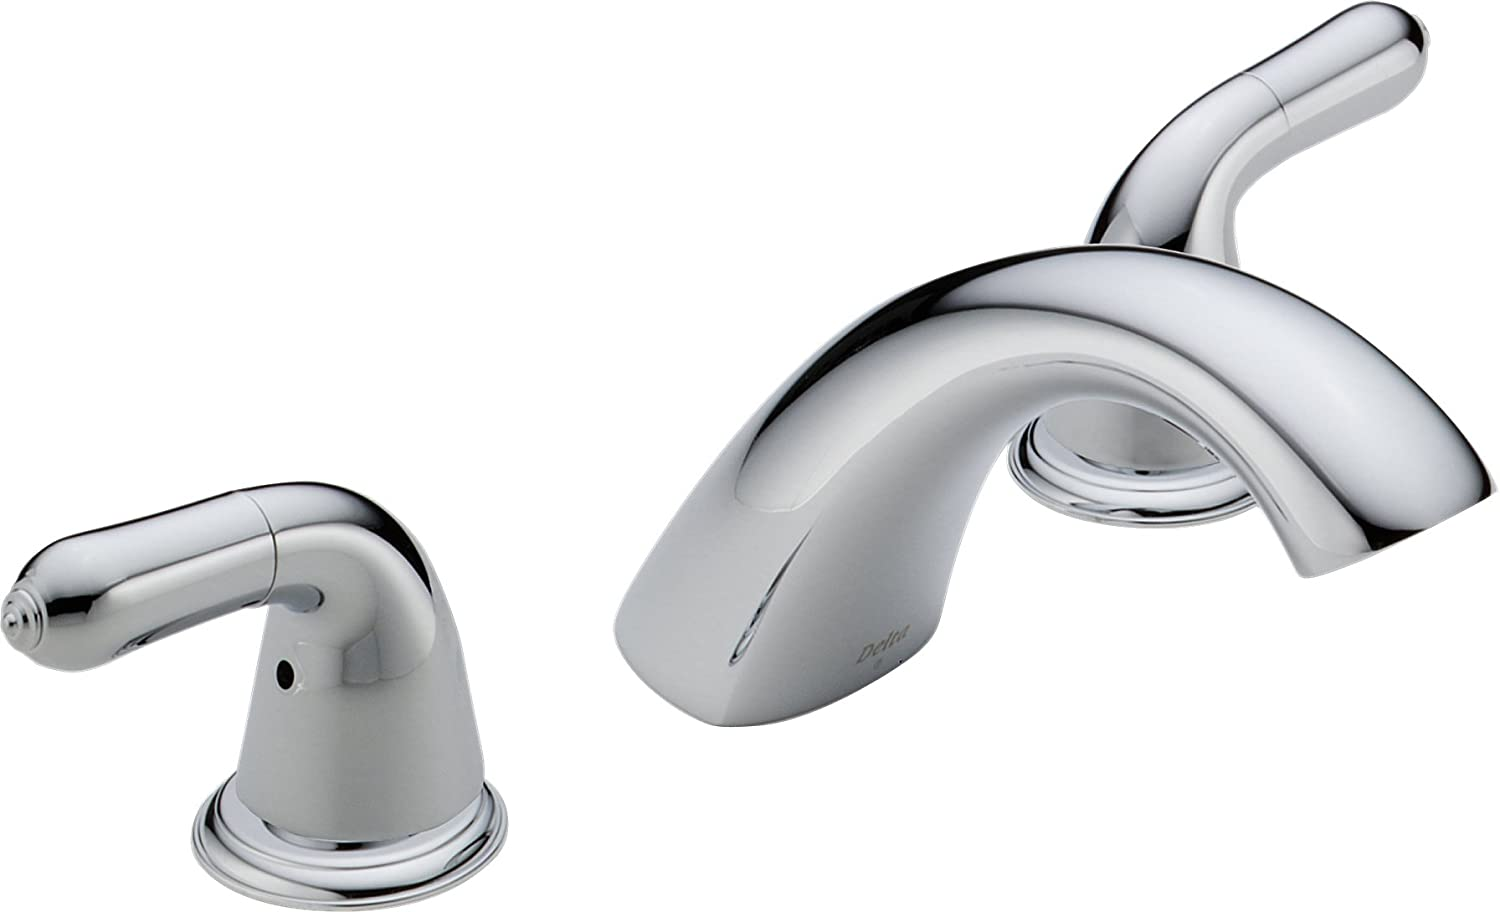 Delta T2730 LHP Roman Tub Faucet Trim Without Handles, Chrome     Amazon.com